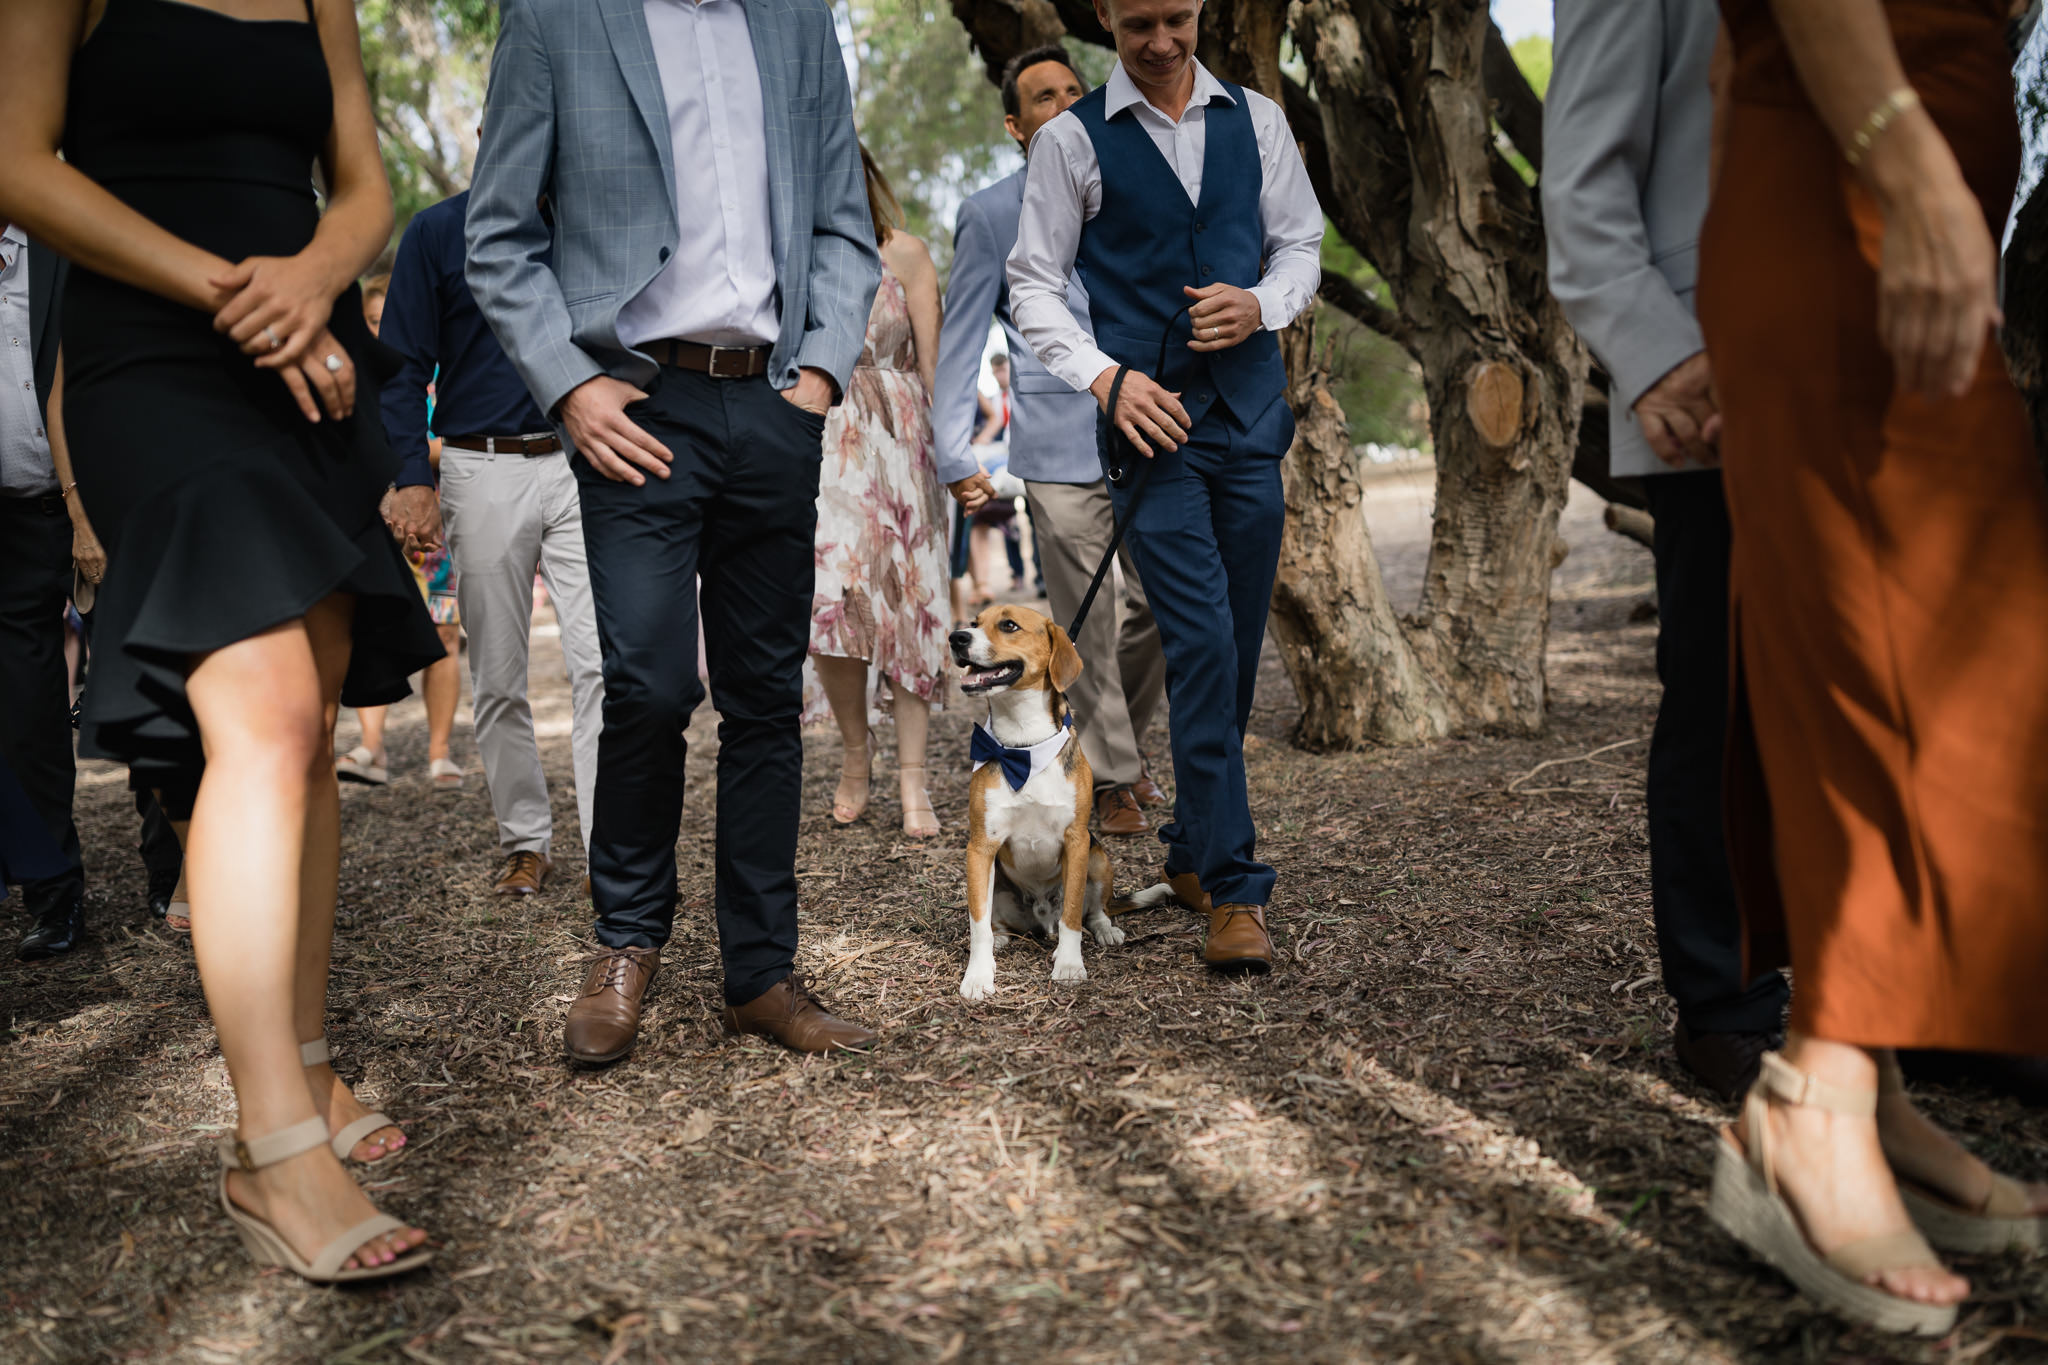 Beagle dog with bow tie walking with guests at outdoor wedding ceremony